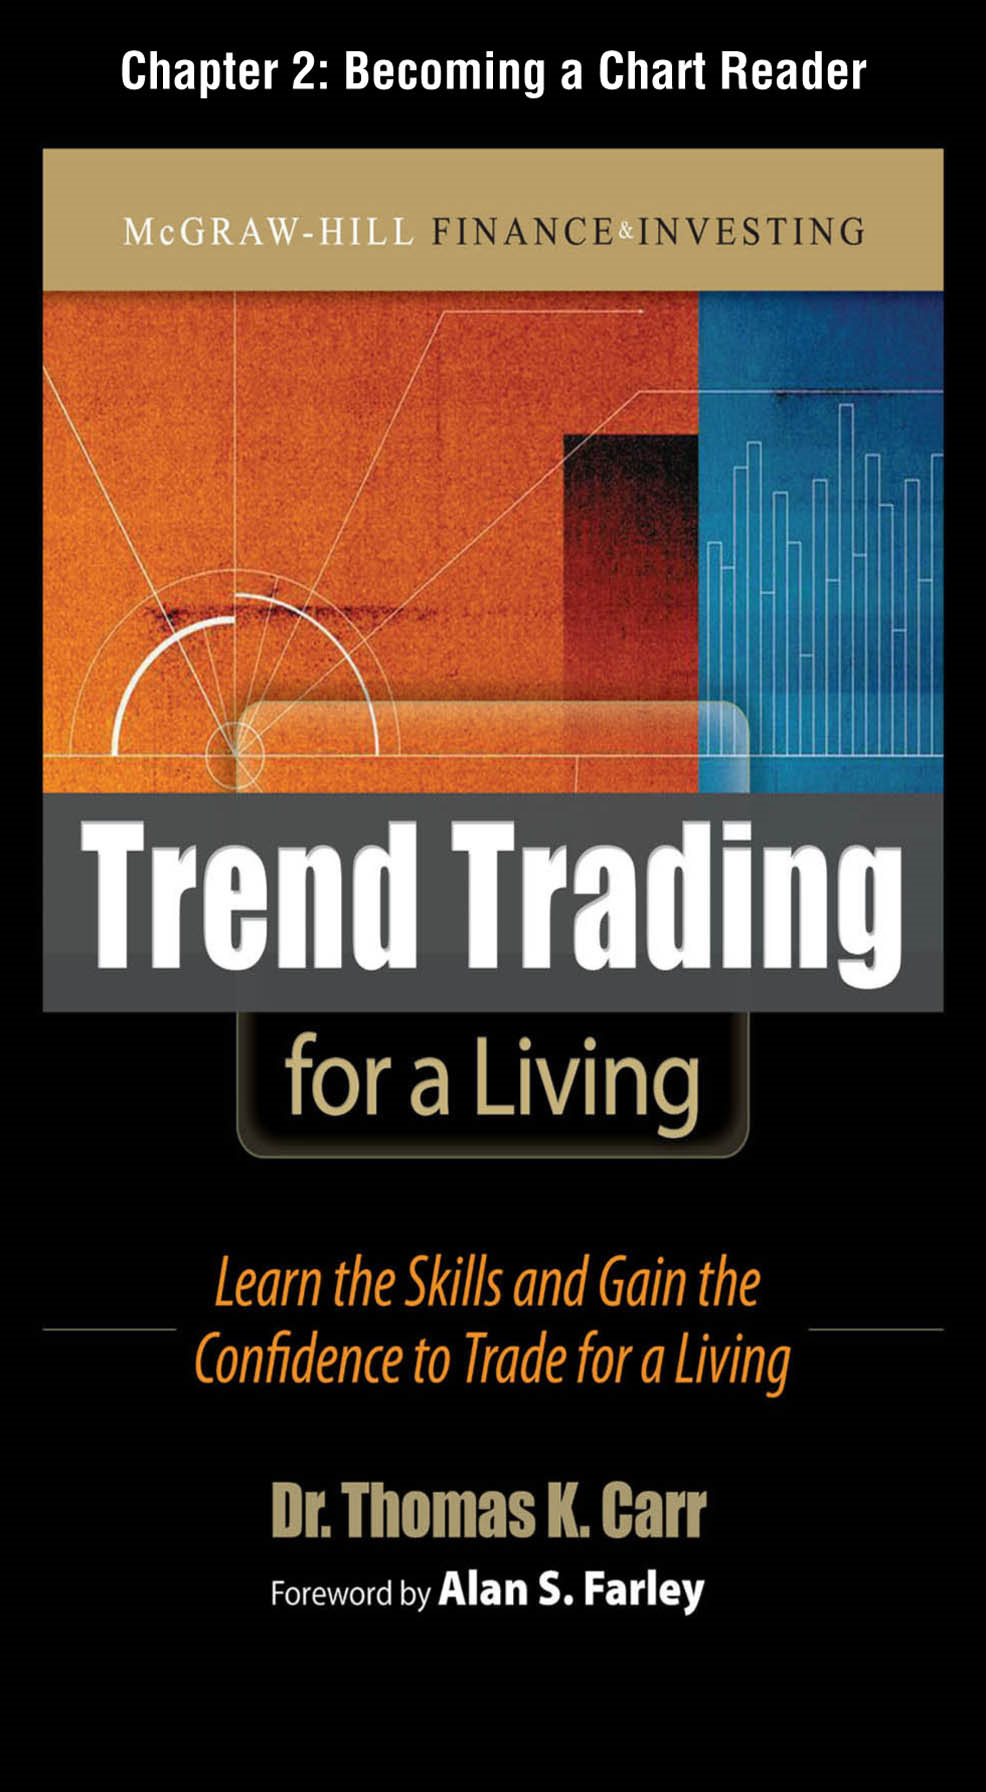 Trend Trading for a Living, Chapter 2 - Becoming a Chart Reader